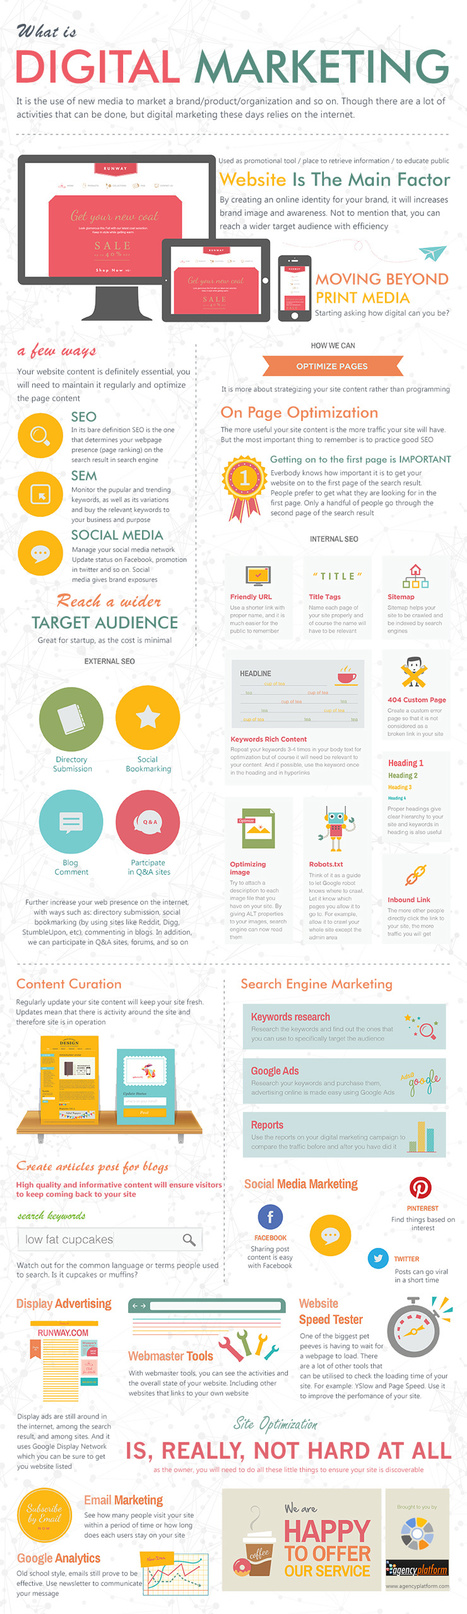 What Is Digital Marketing? – infographic /@BerriePelser | WordPress Google SEO and Social Media | Scoop.it